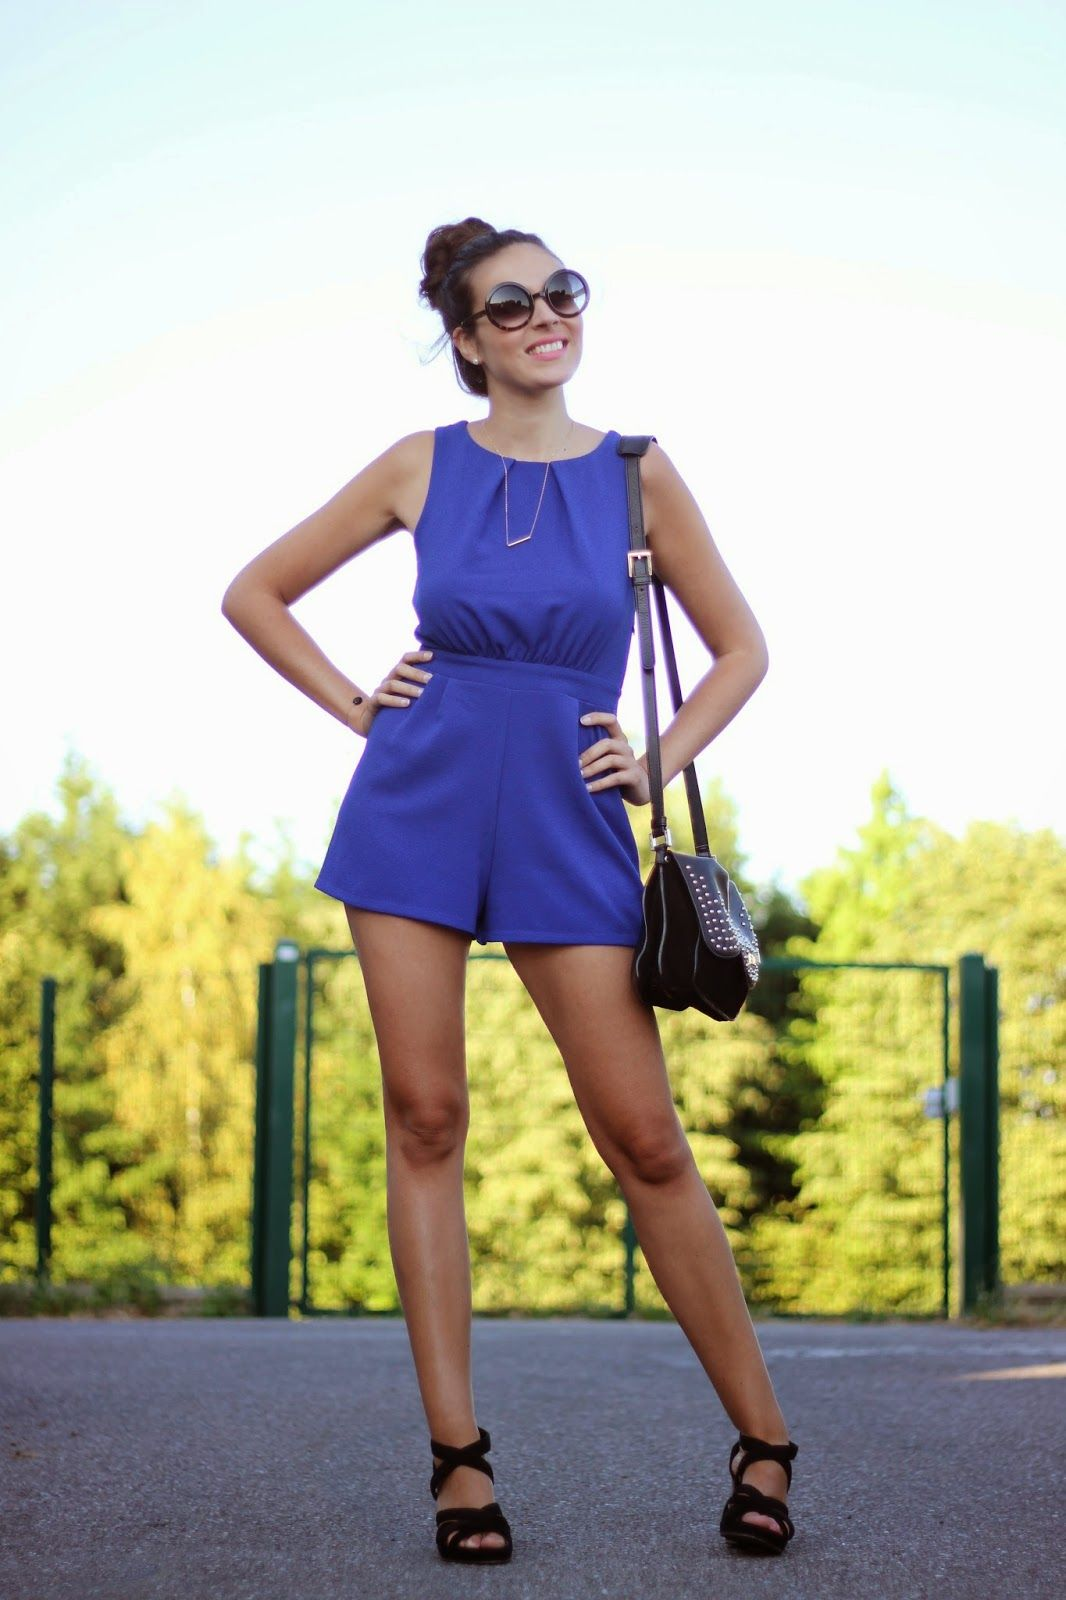 Pretty Blue Outfit With Our Betty X Lancaster Bag Pic From